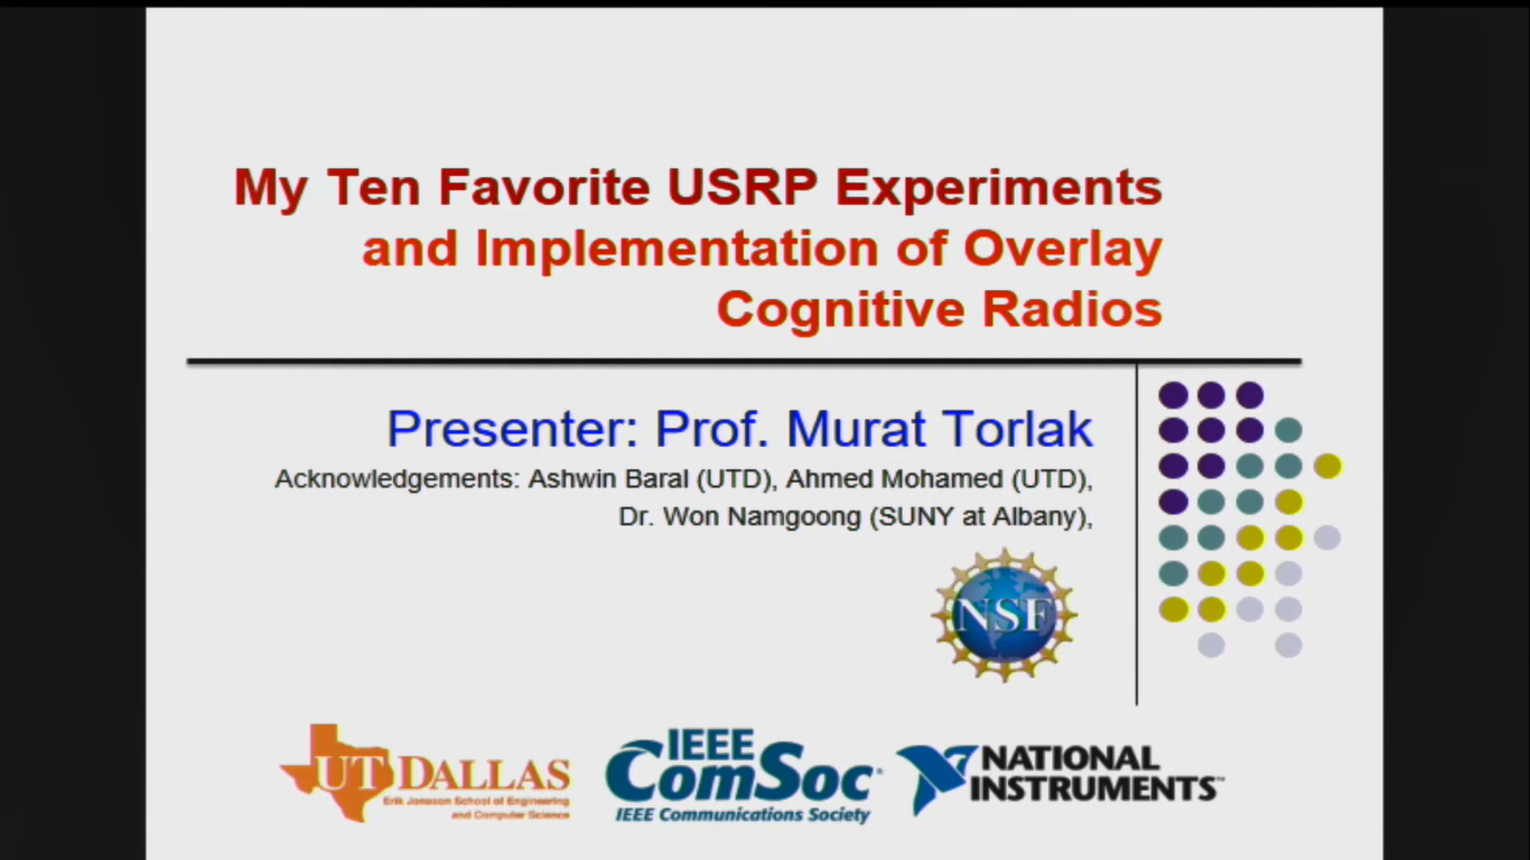 My Ten Favorite USRP Experiments and Implementation of Overlay Cognitive Radios